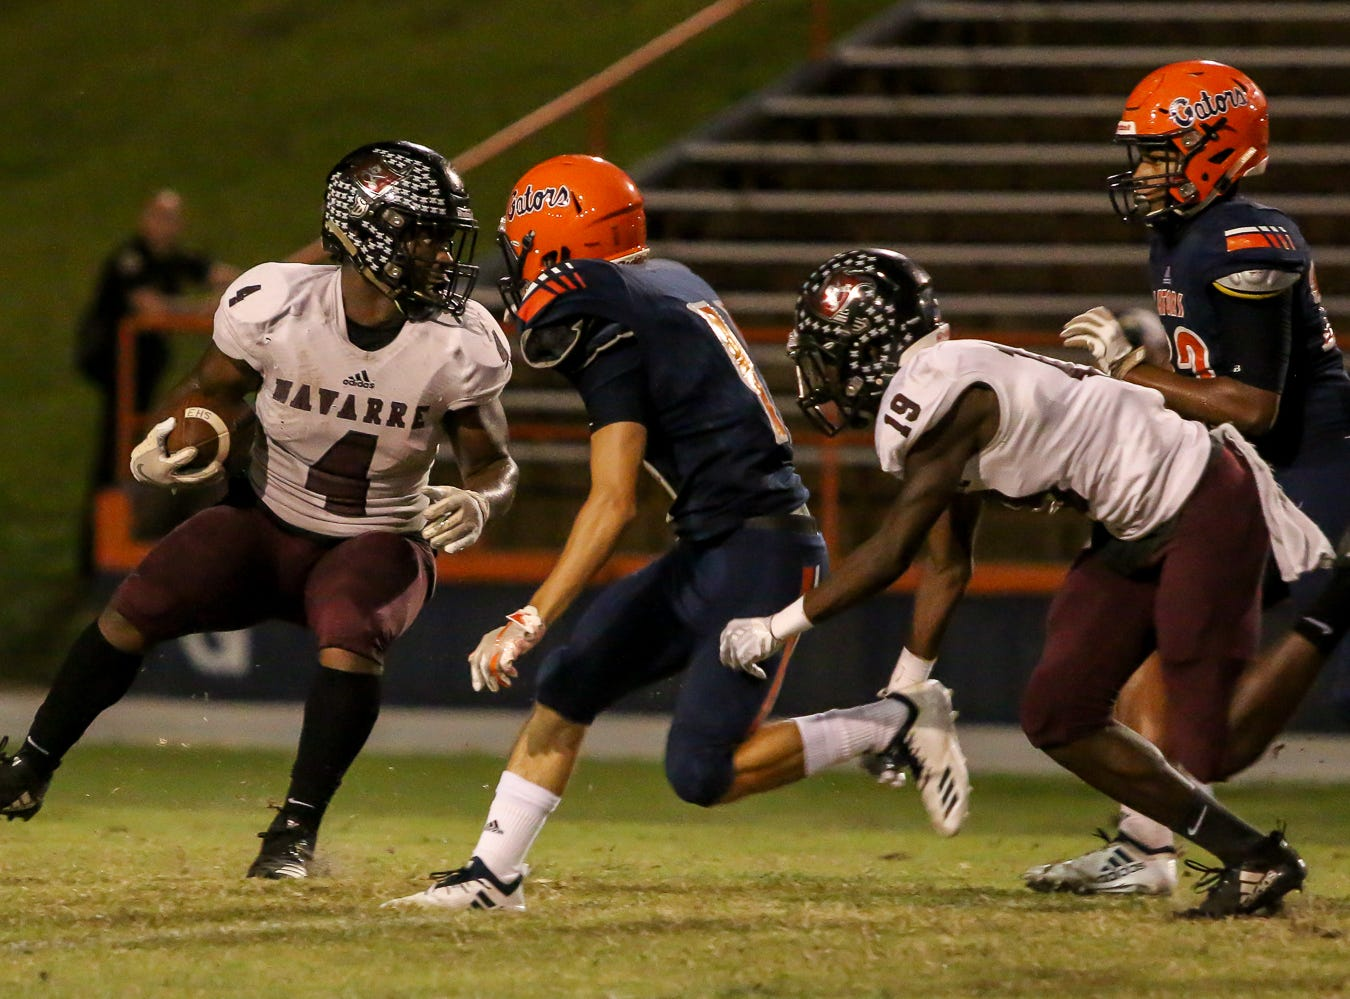 Navarre's Joshua Carter (4) tries to cut back inside for more yards against the Gators in the homecoming game at Escambia High School on Friday, October 5, 2018.